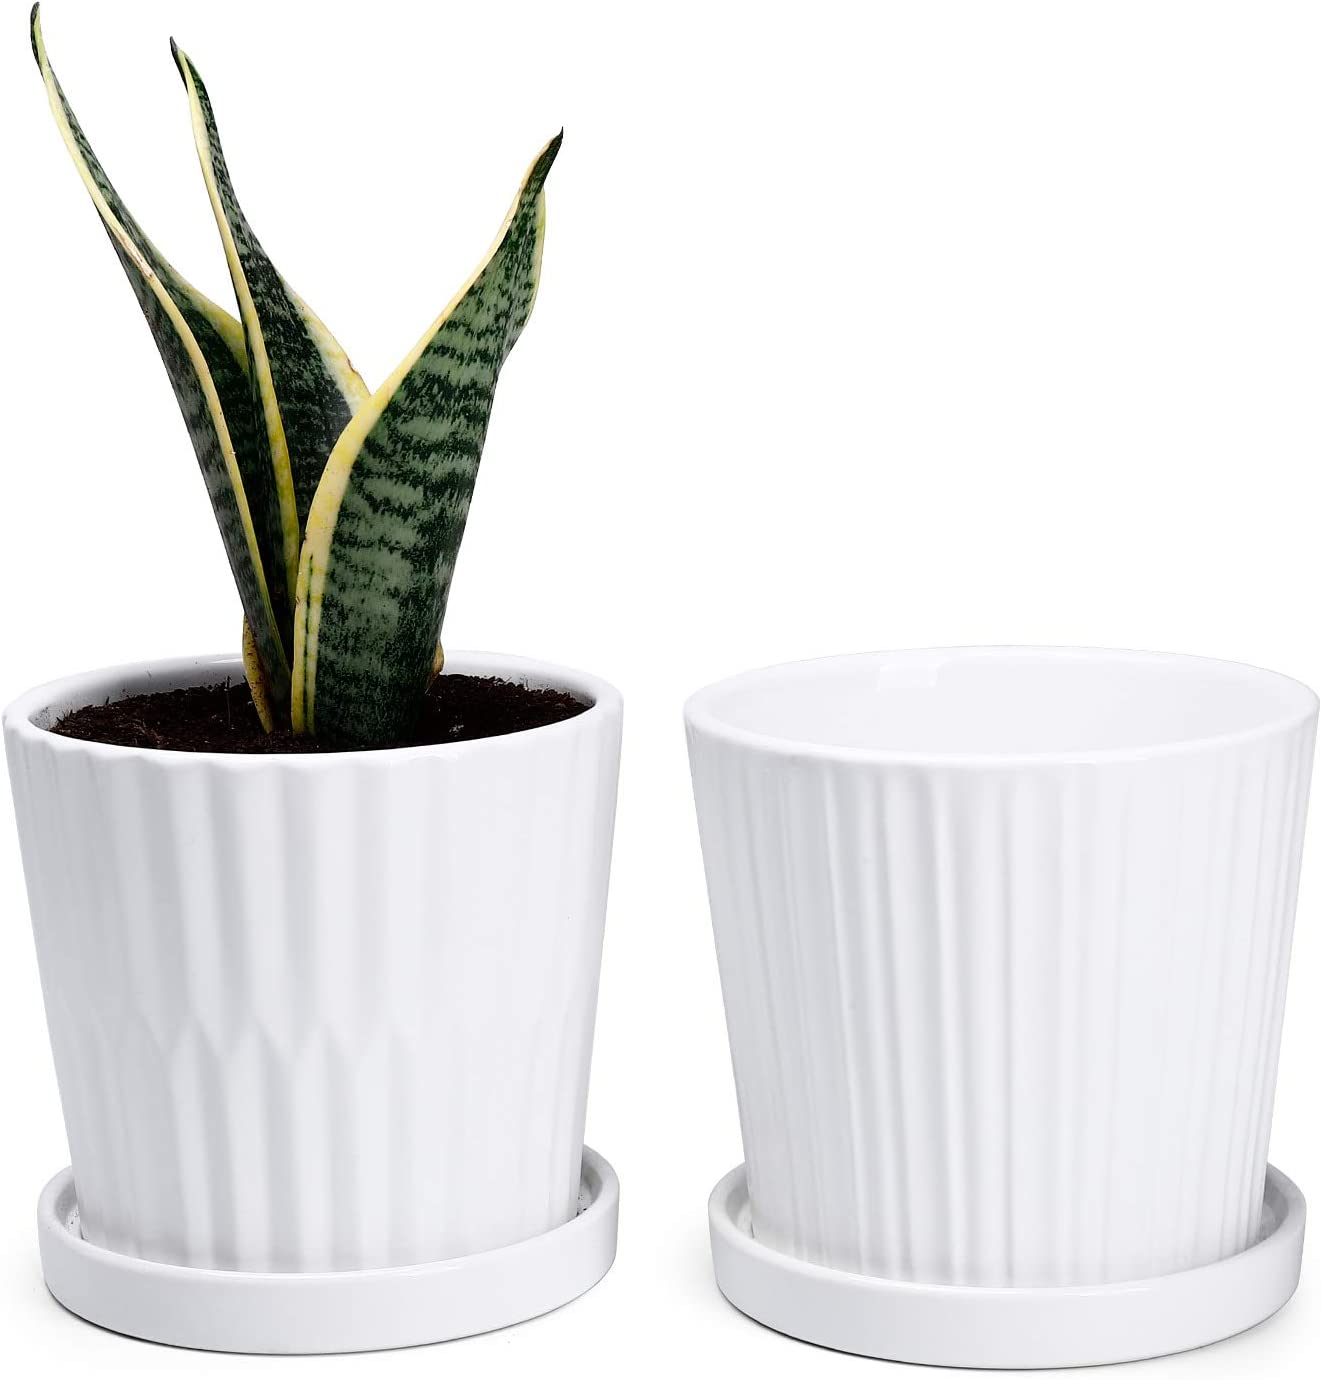 Medium Plant Pots - 6 Inch White Cylinder Ceramic Planters with Attached Saucers, Two Line Grain, House and Office Decor, Set of 2